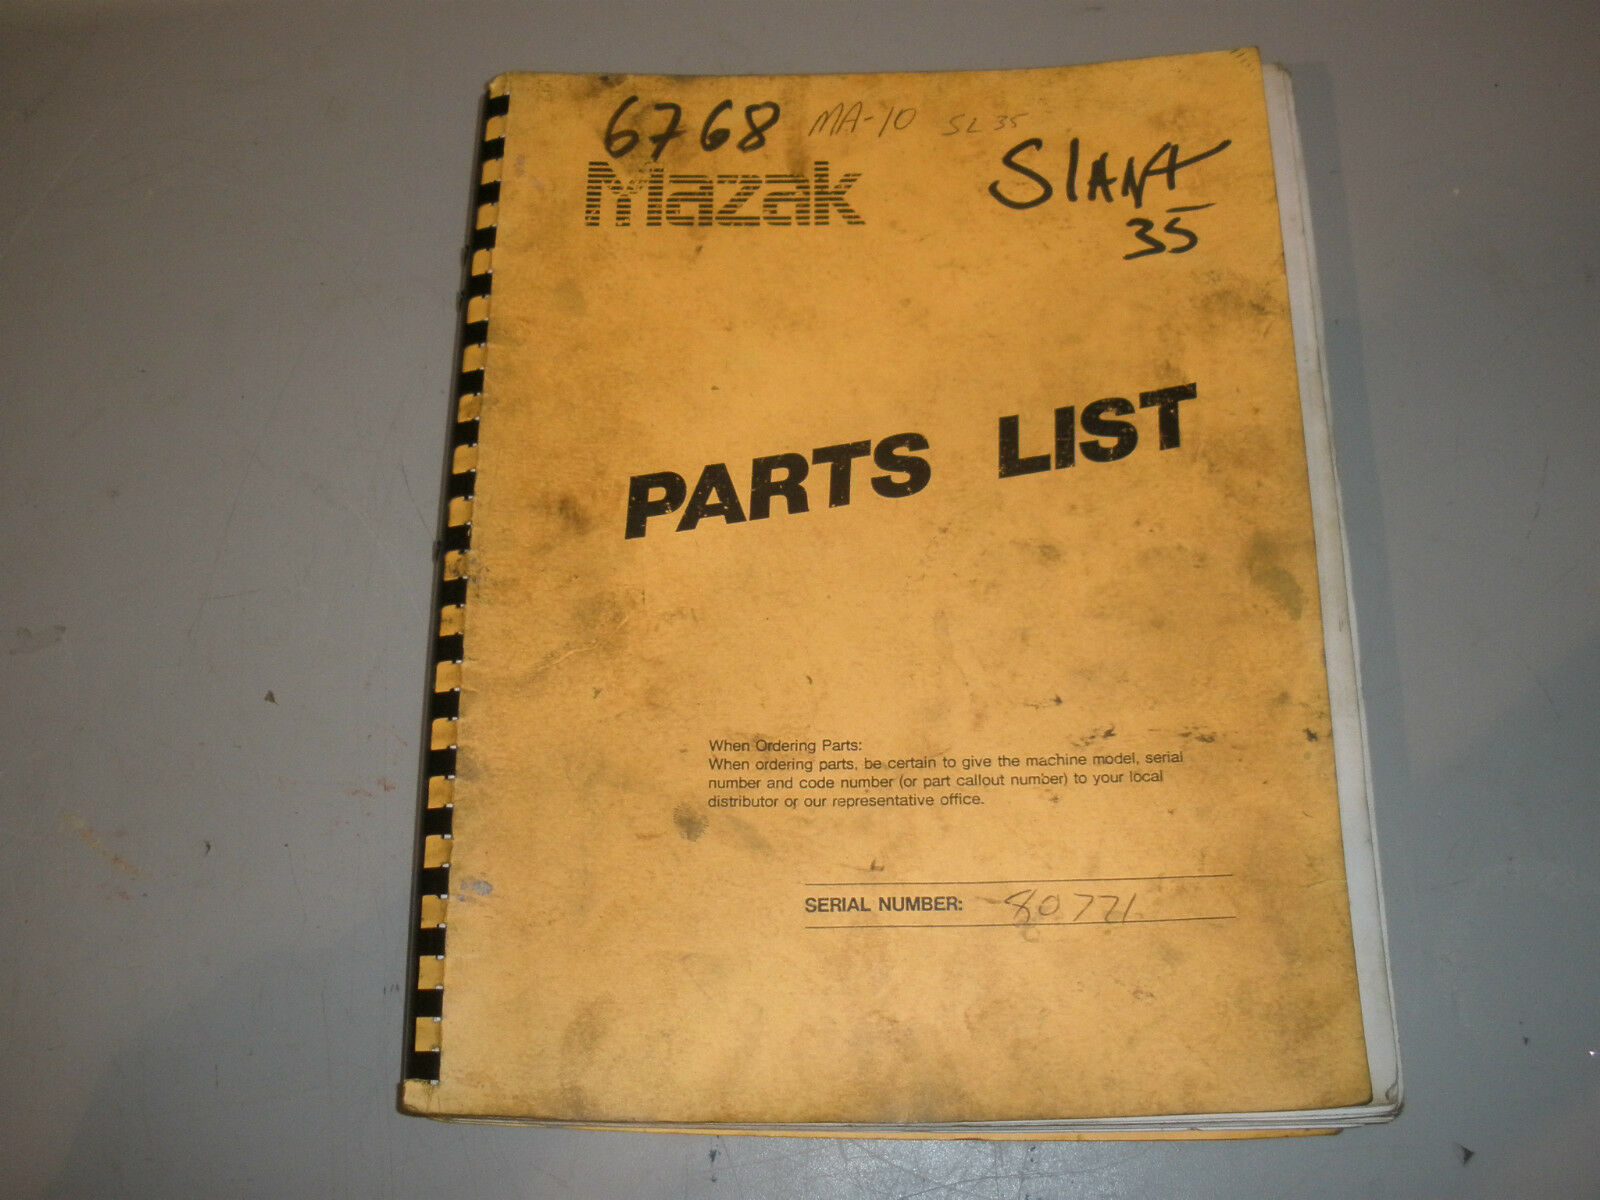 Mazak CNC Lathe Parts Manual For Slant Turn 28, 35 1 of 1Only 1 available  ...